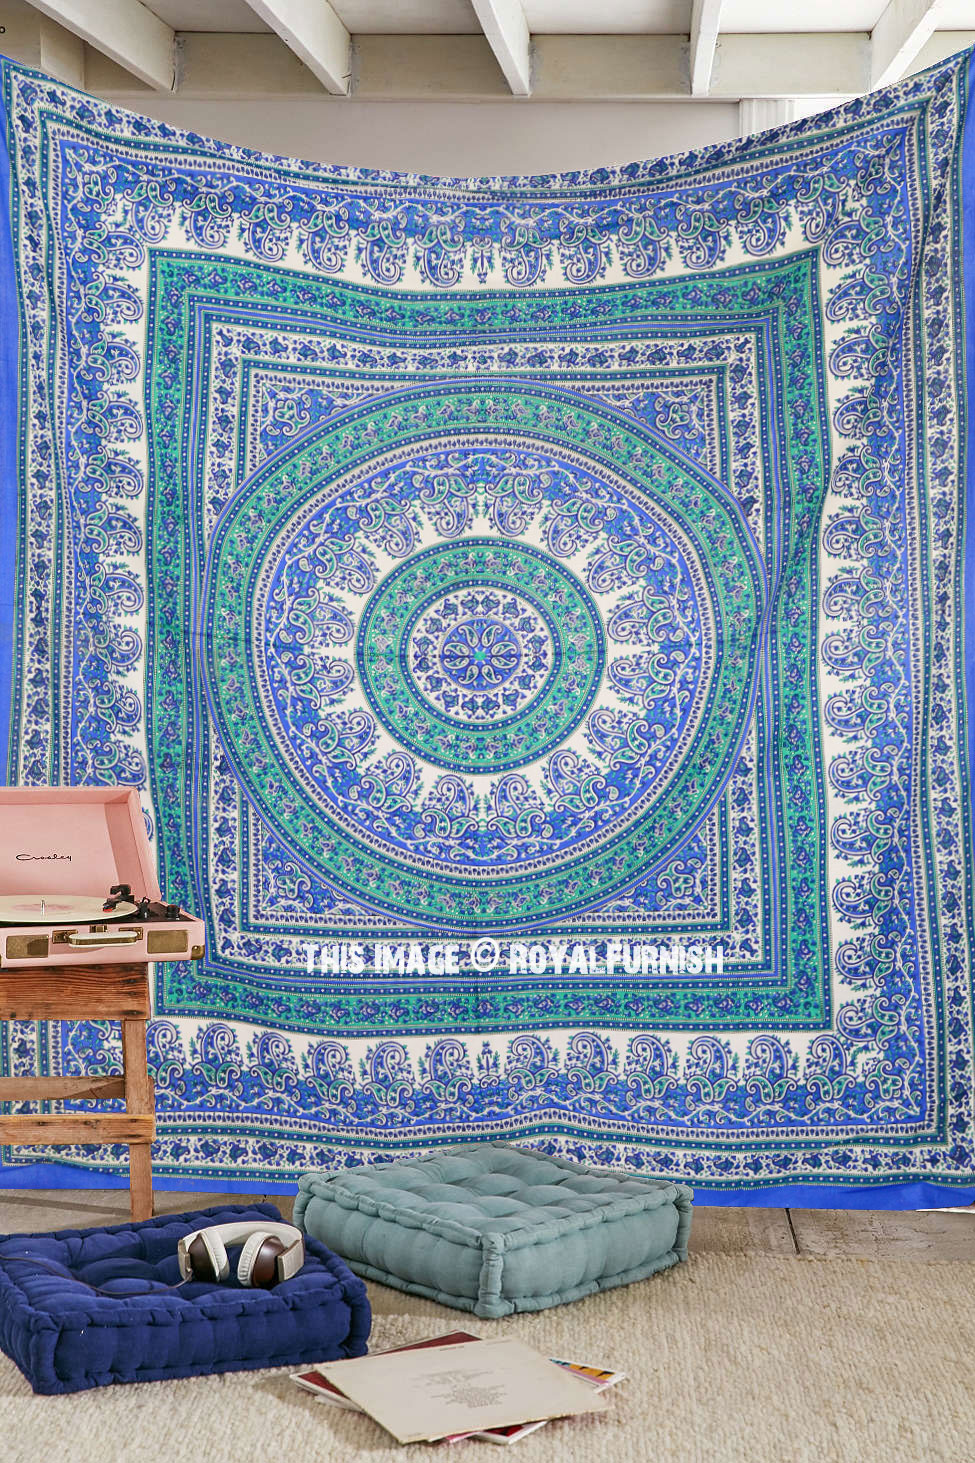 Large Blue Paisley Floral Medallion Circle Cotton Tapestry